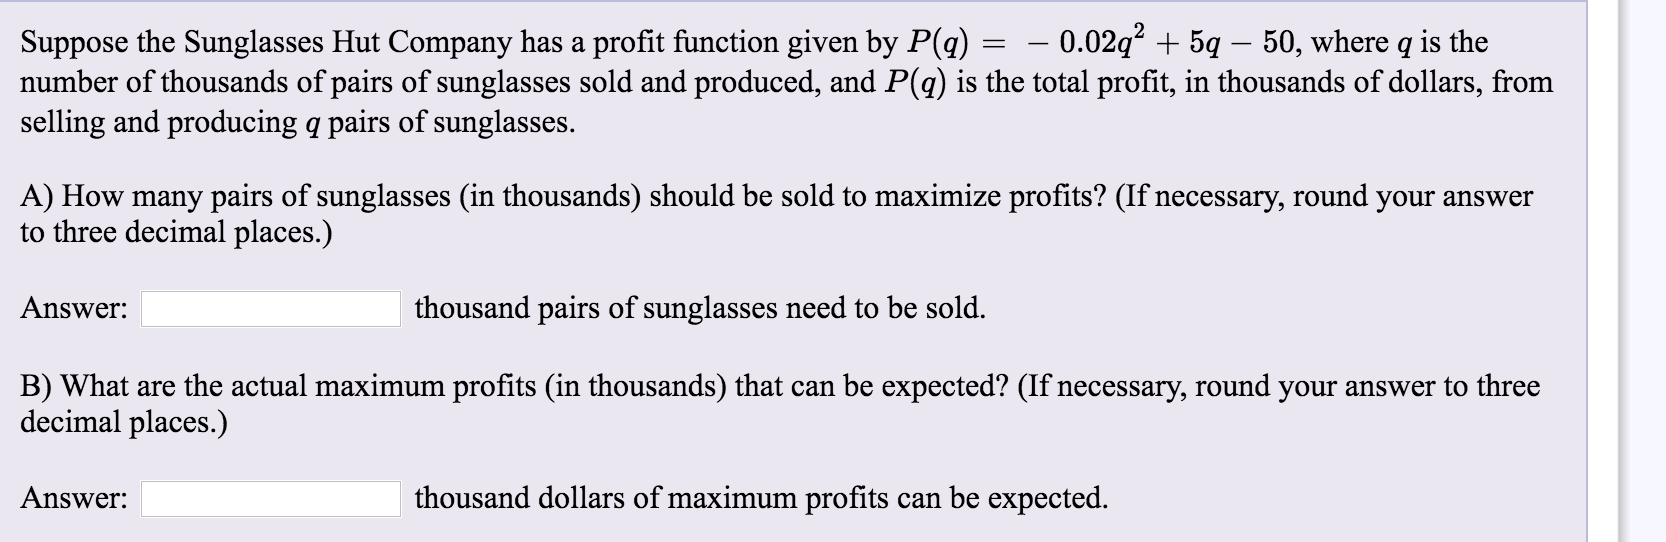 Suppose the Sunglasses Hut Company has a profit function given by P(q) = – 0.02q2 + 5q – 50, where q is the number of thousan